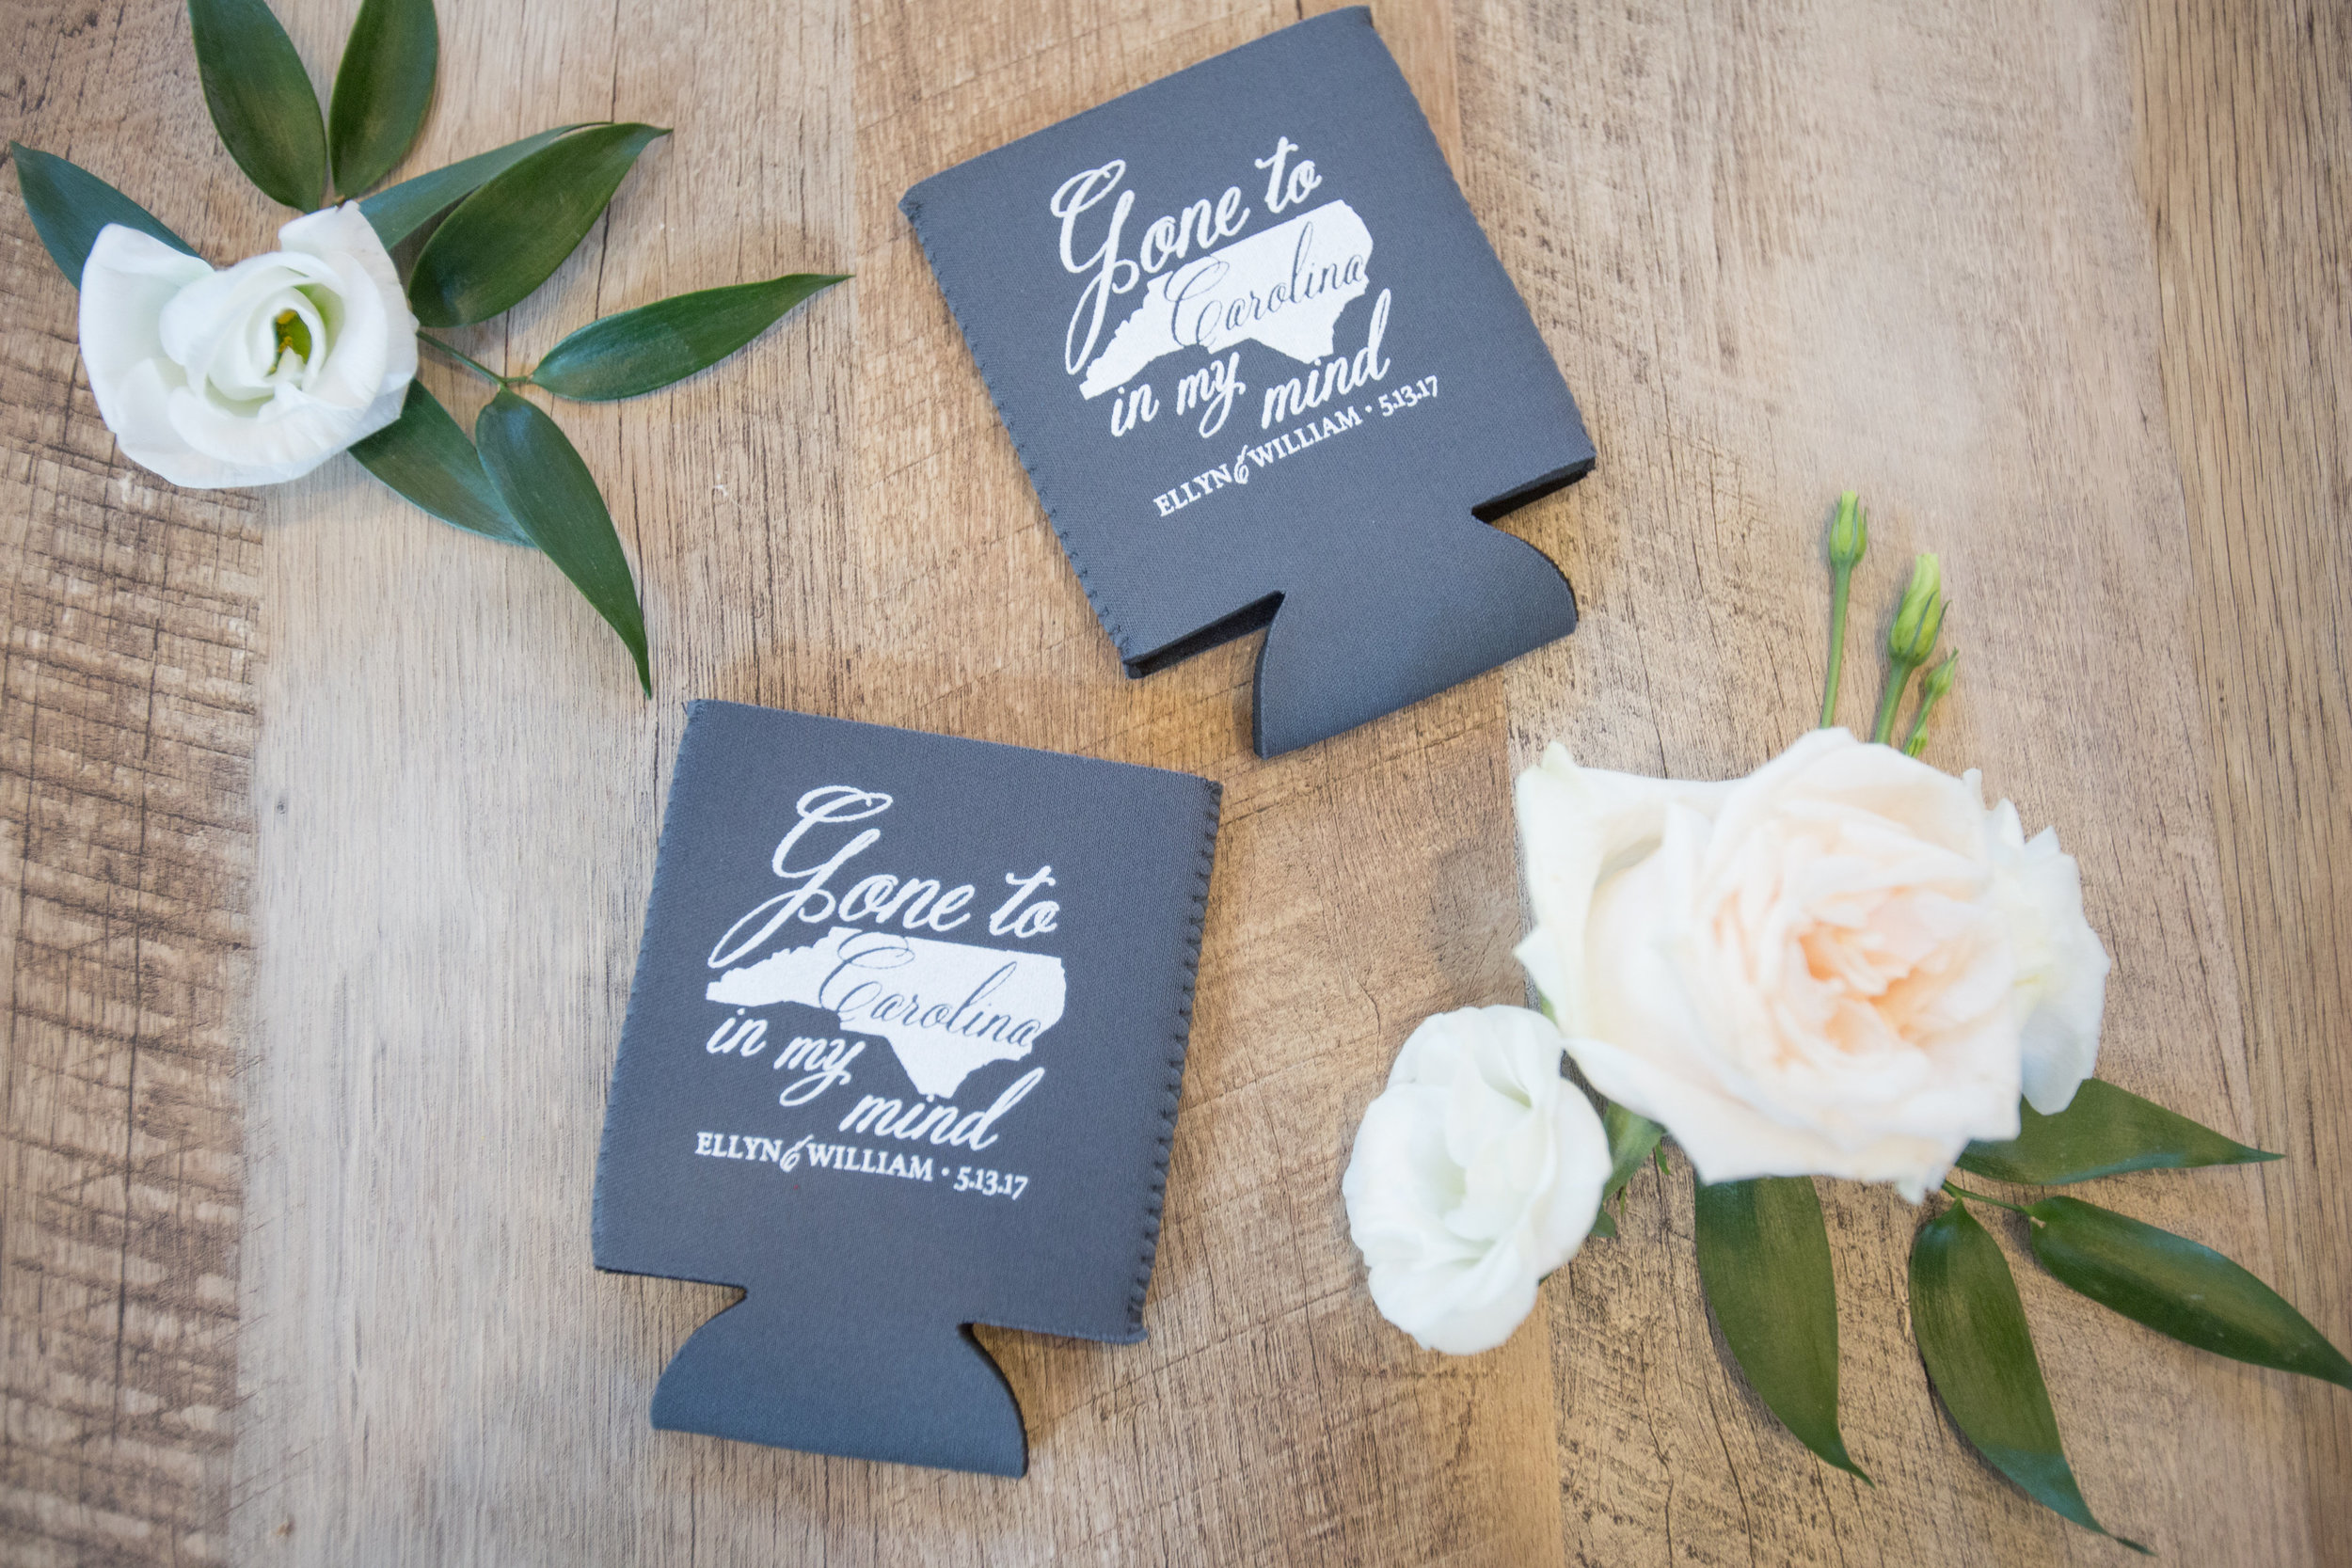 Charlotte North Carolina Wedding, Trump National Golf Course Wedding, Lakeside wedding, Blush Ivory and Greenery Wedding Design, The Graceful Host, Classic Wedding, Wedding Koozies, UNC Themed Wedding Koozie, North Carolina Wedding Koozie, Gone To Carolina In My Mind, Customized Wedding Details